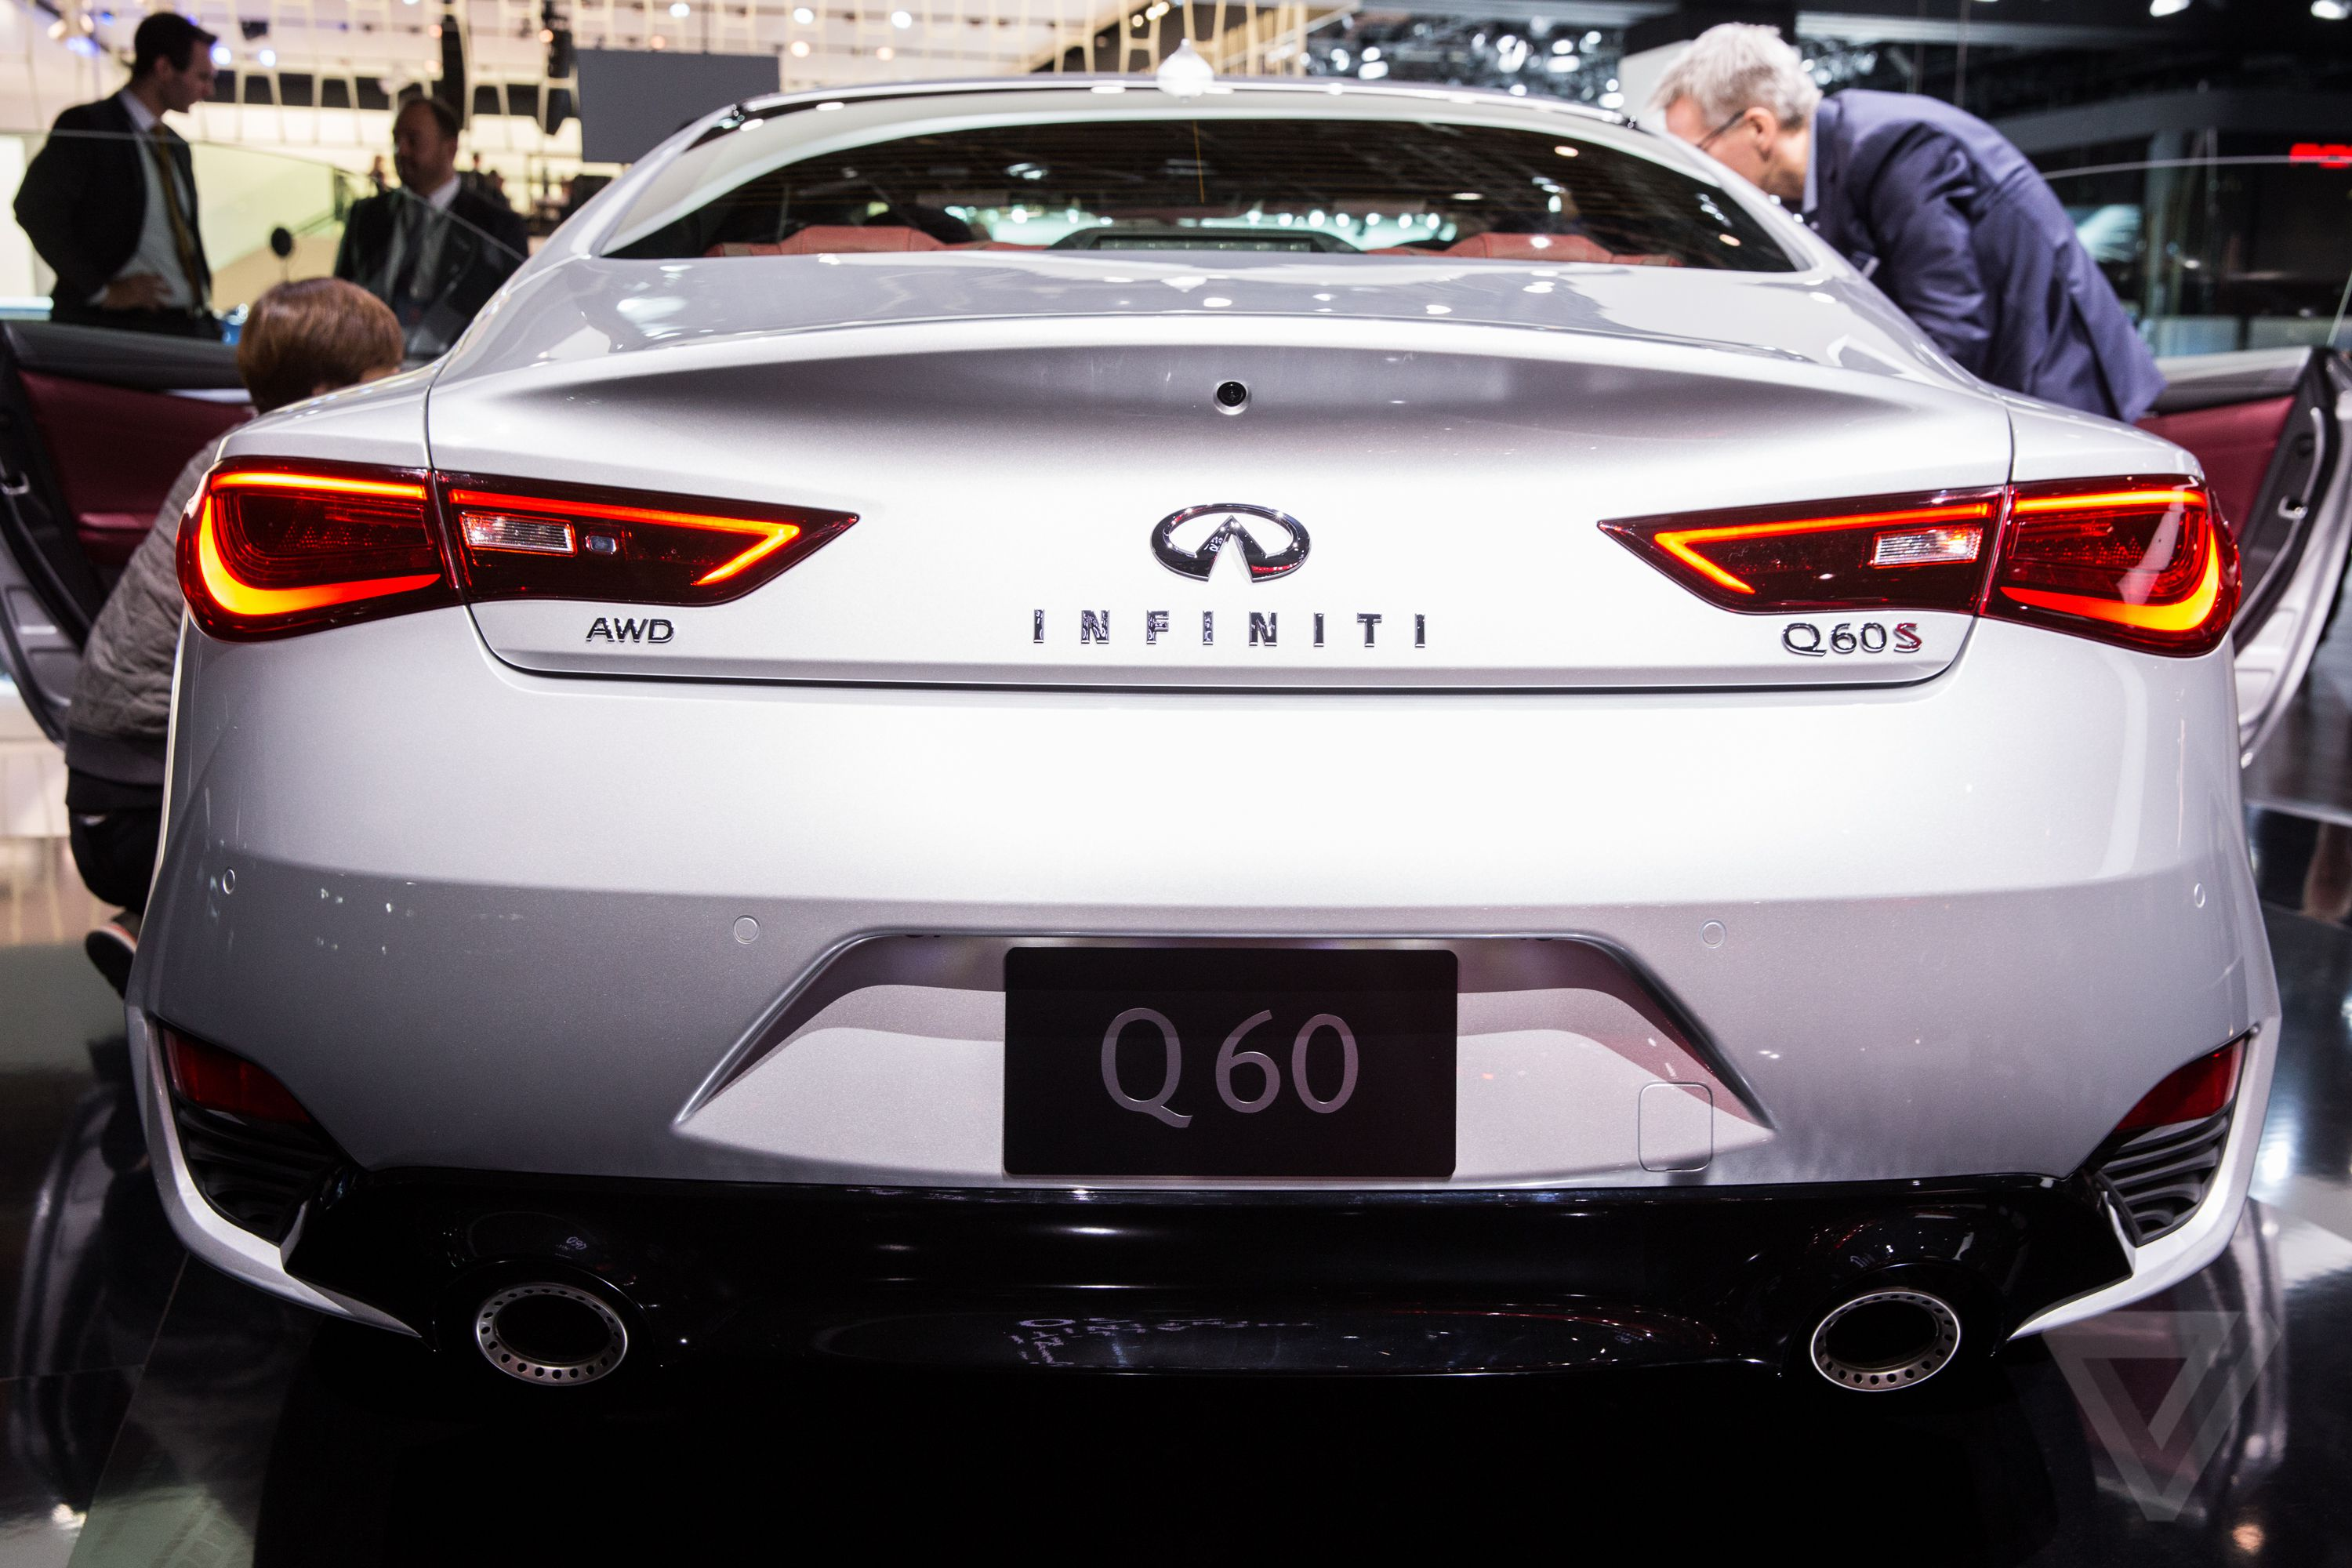 Qx80 style grew on me saw one last night so sexy new q60 tails are so fucking sexy